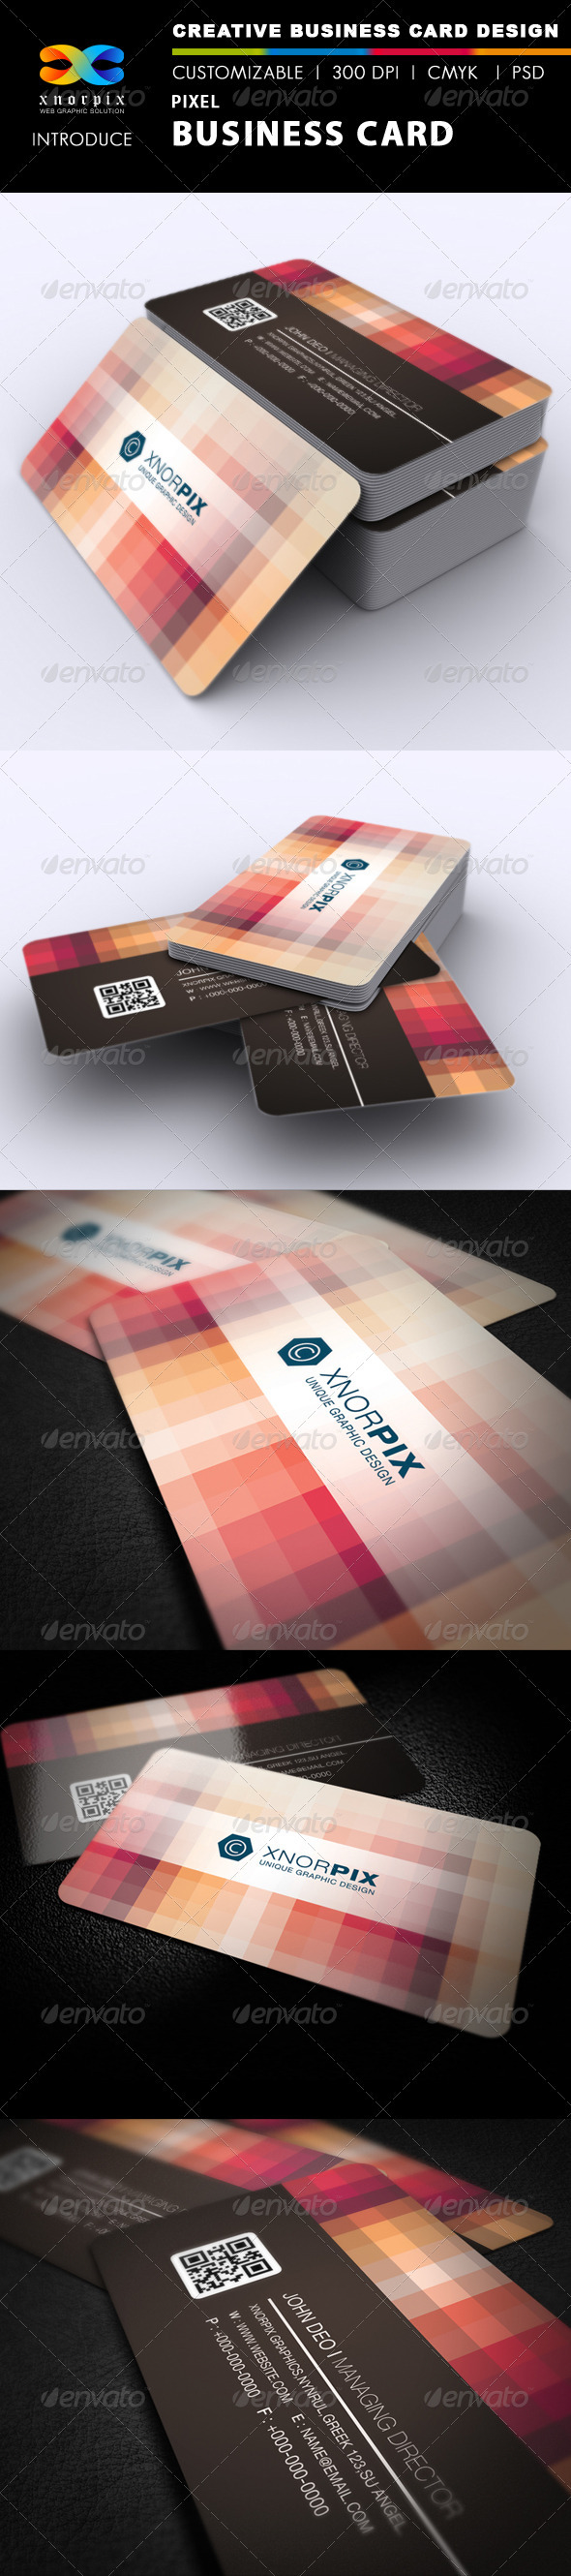 Pixel Business Card - Corporate Business Cards